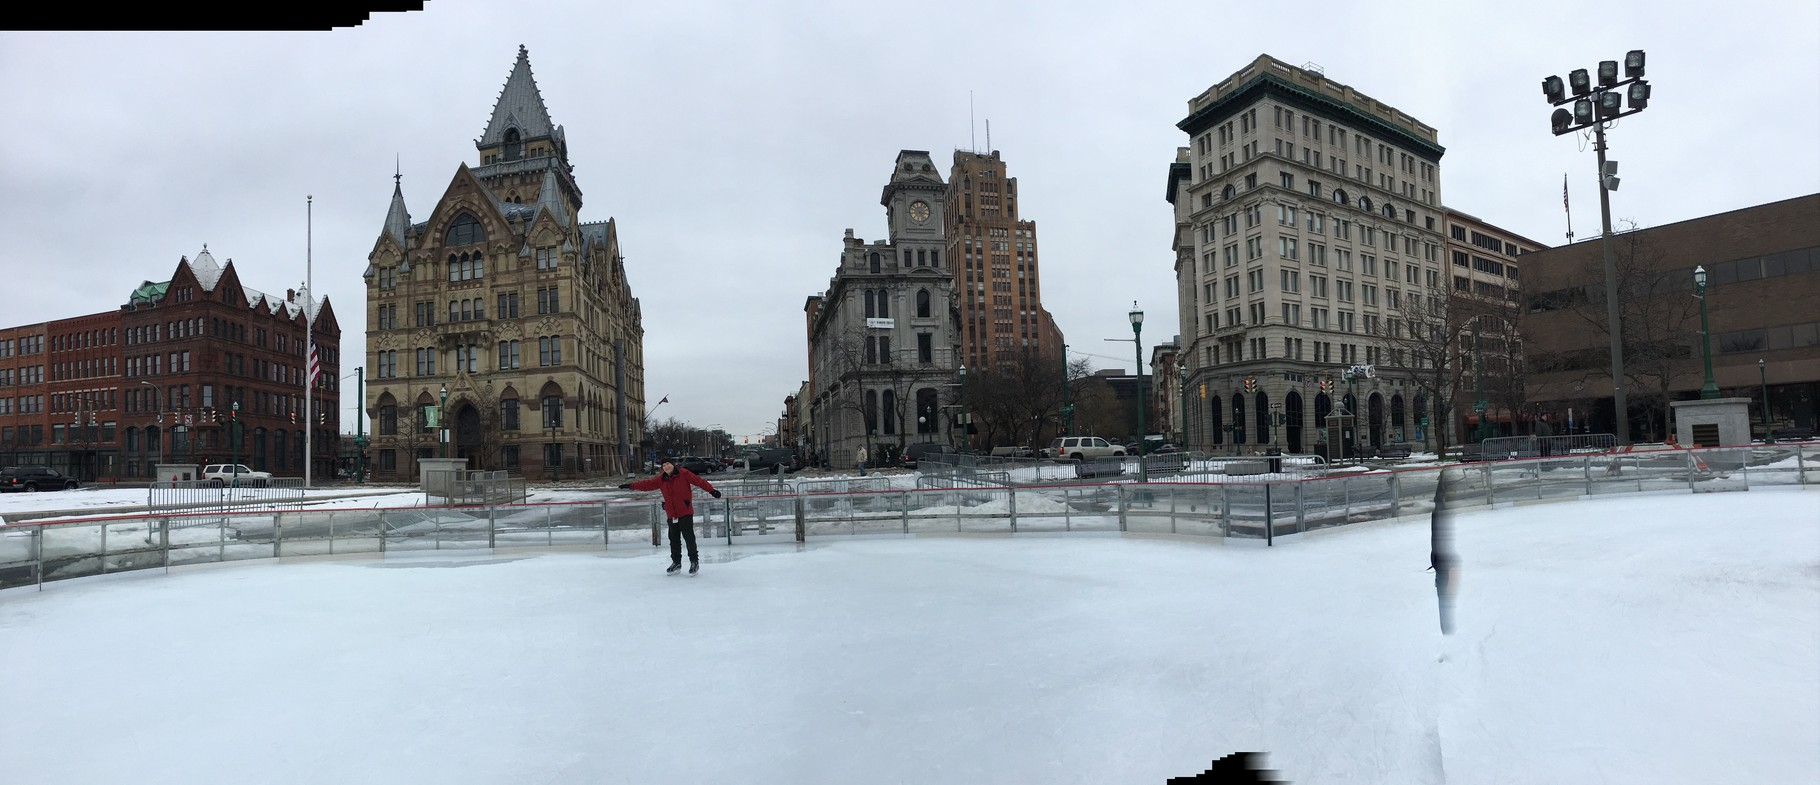 John skating at Clinton Square, Syracuse, Feb 21, 2016